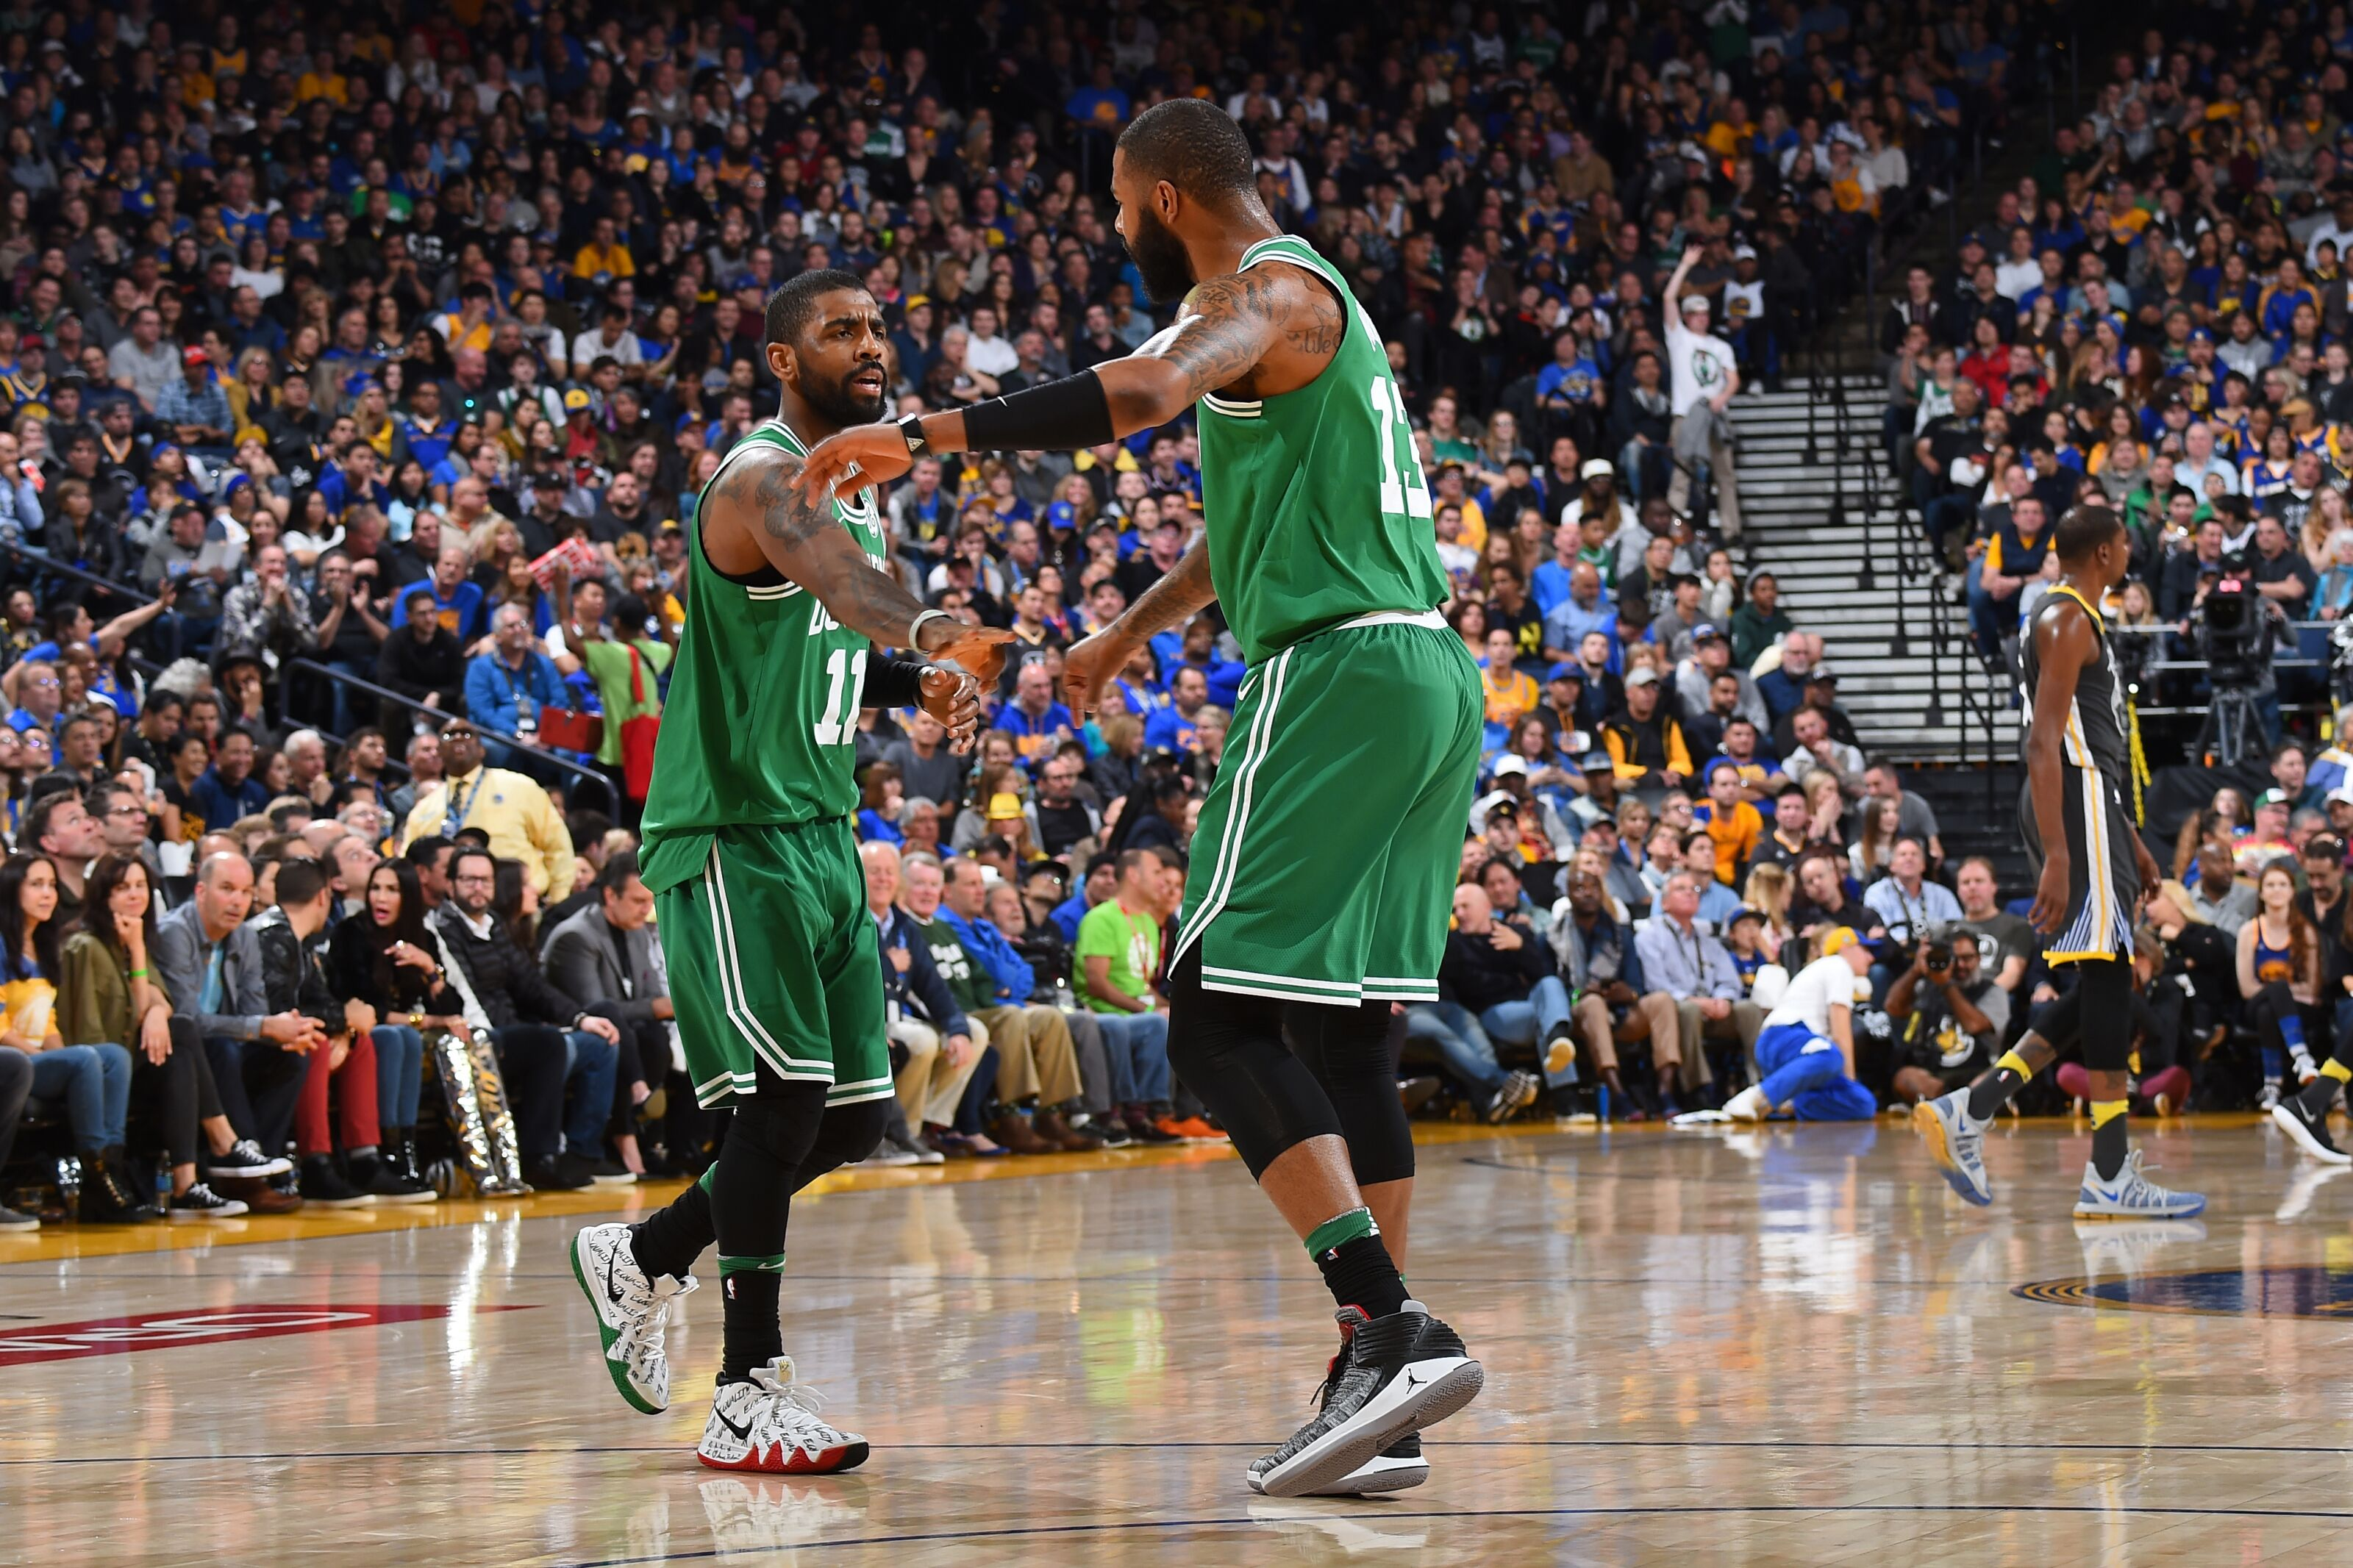 d428cadc008c Could the Boston Celtics Compete with the Warriors in the NBA Finals